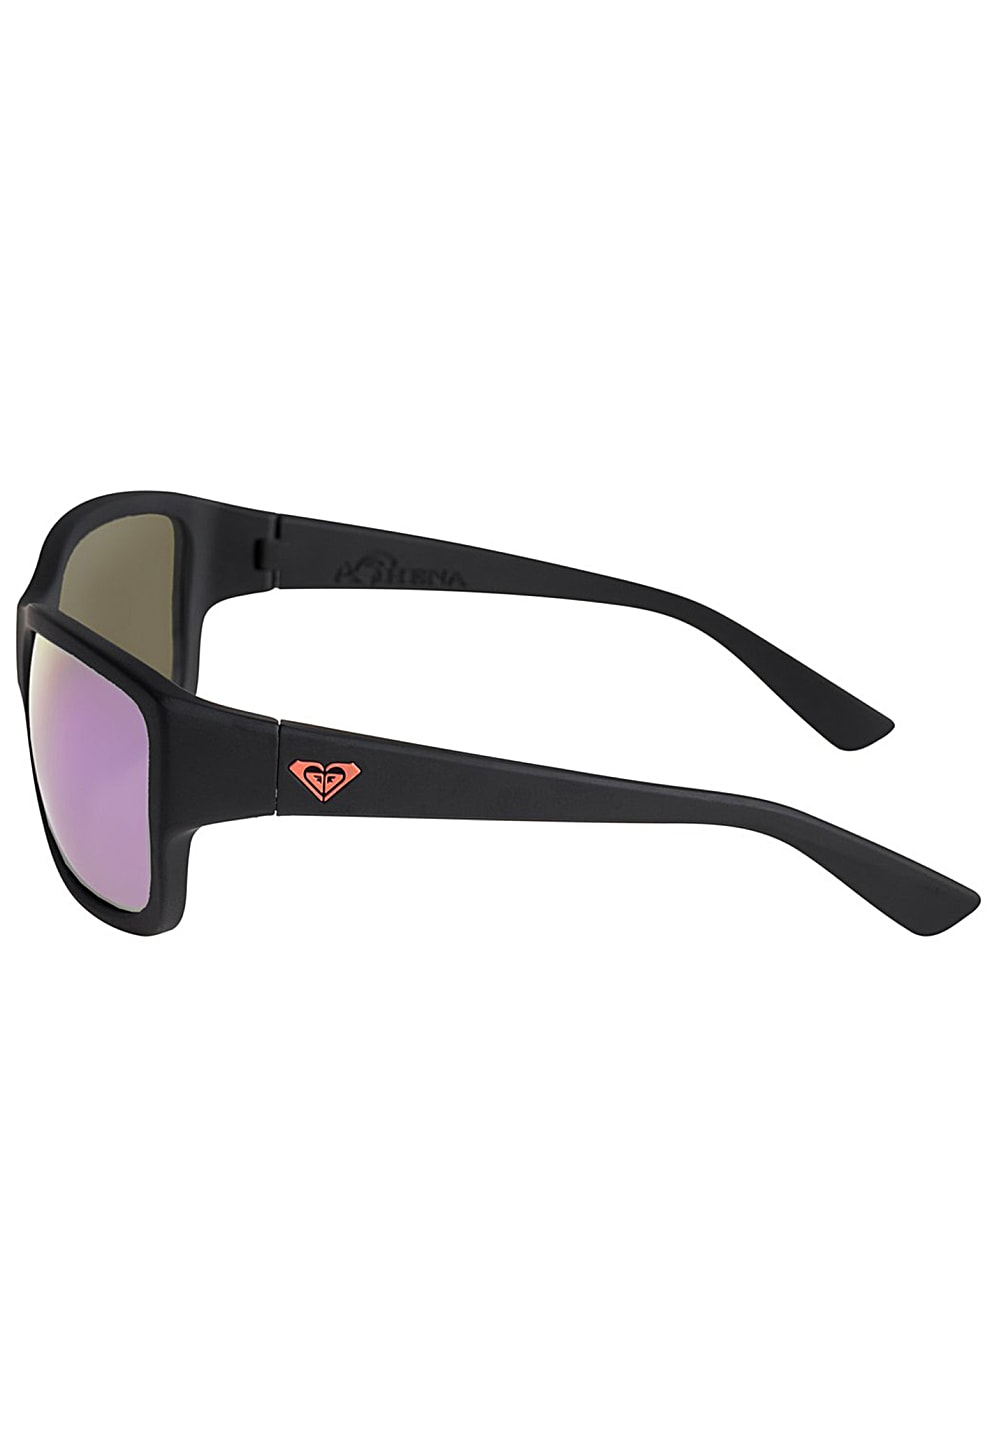 753c9d16f4e1c3 Roxy Athena Polarised - Zonnebril voor Dames - Zwart - Planet Sports